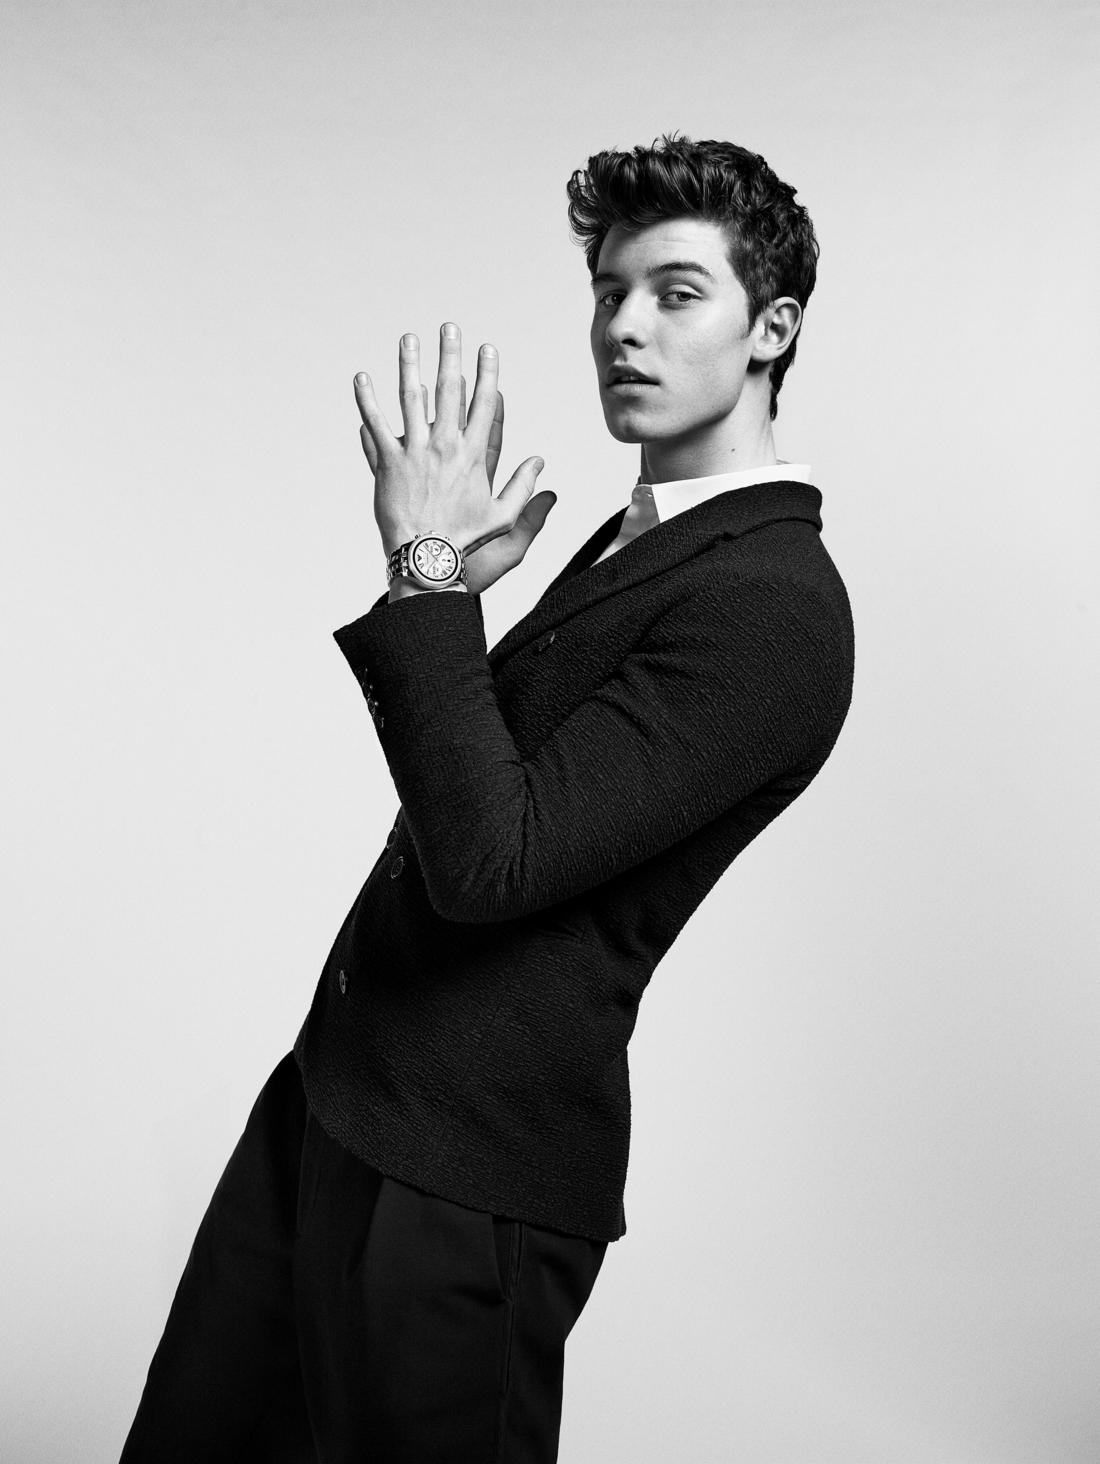 EMPORIO ARMANI SHAWN MENDES COME TOGETHER TO LAUNCH THE FIRST TOUCHSCREEN SMARTWATCH COLLECTION